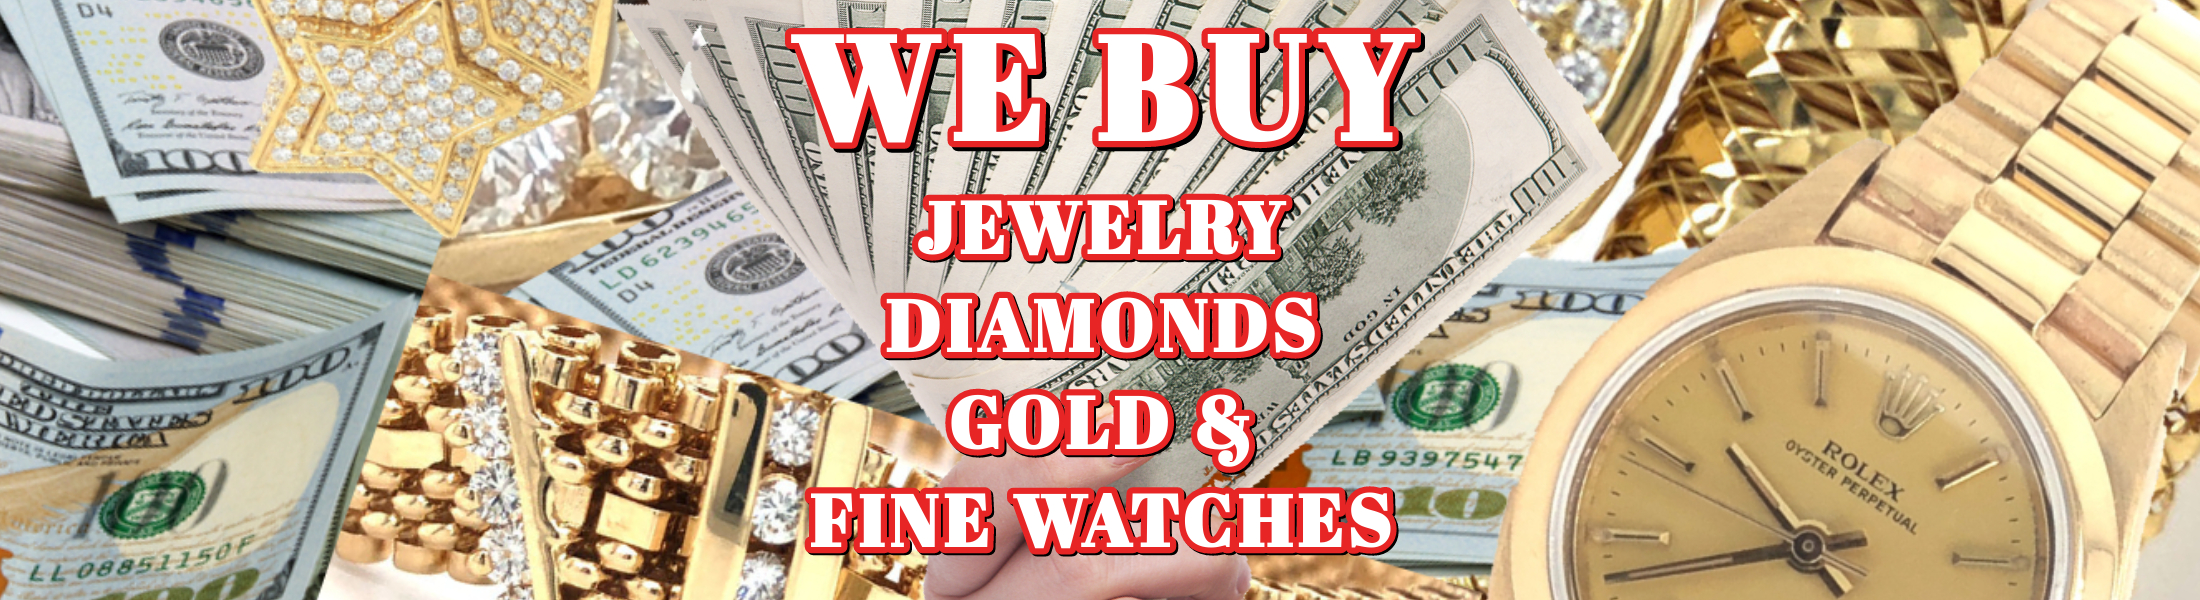 Sell Jewelry - Gold - Diamonds - Fine Watches - Sell Rolex Watches